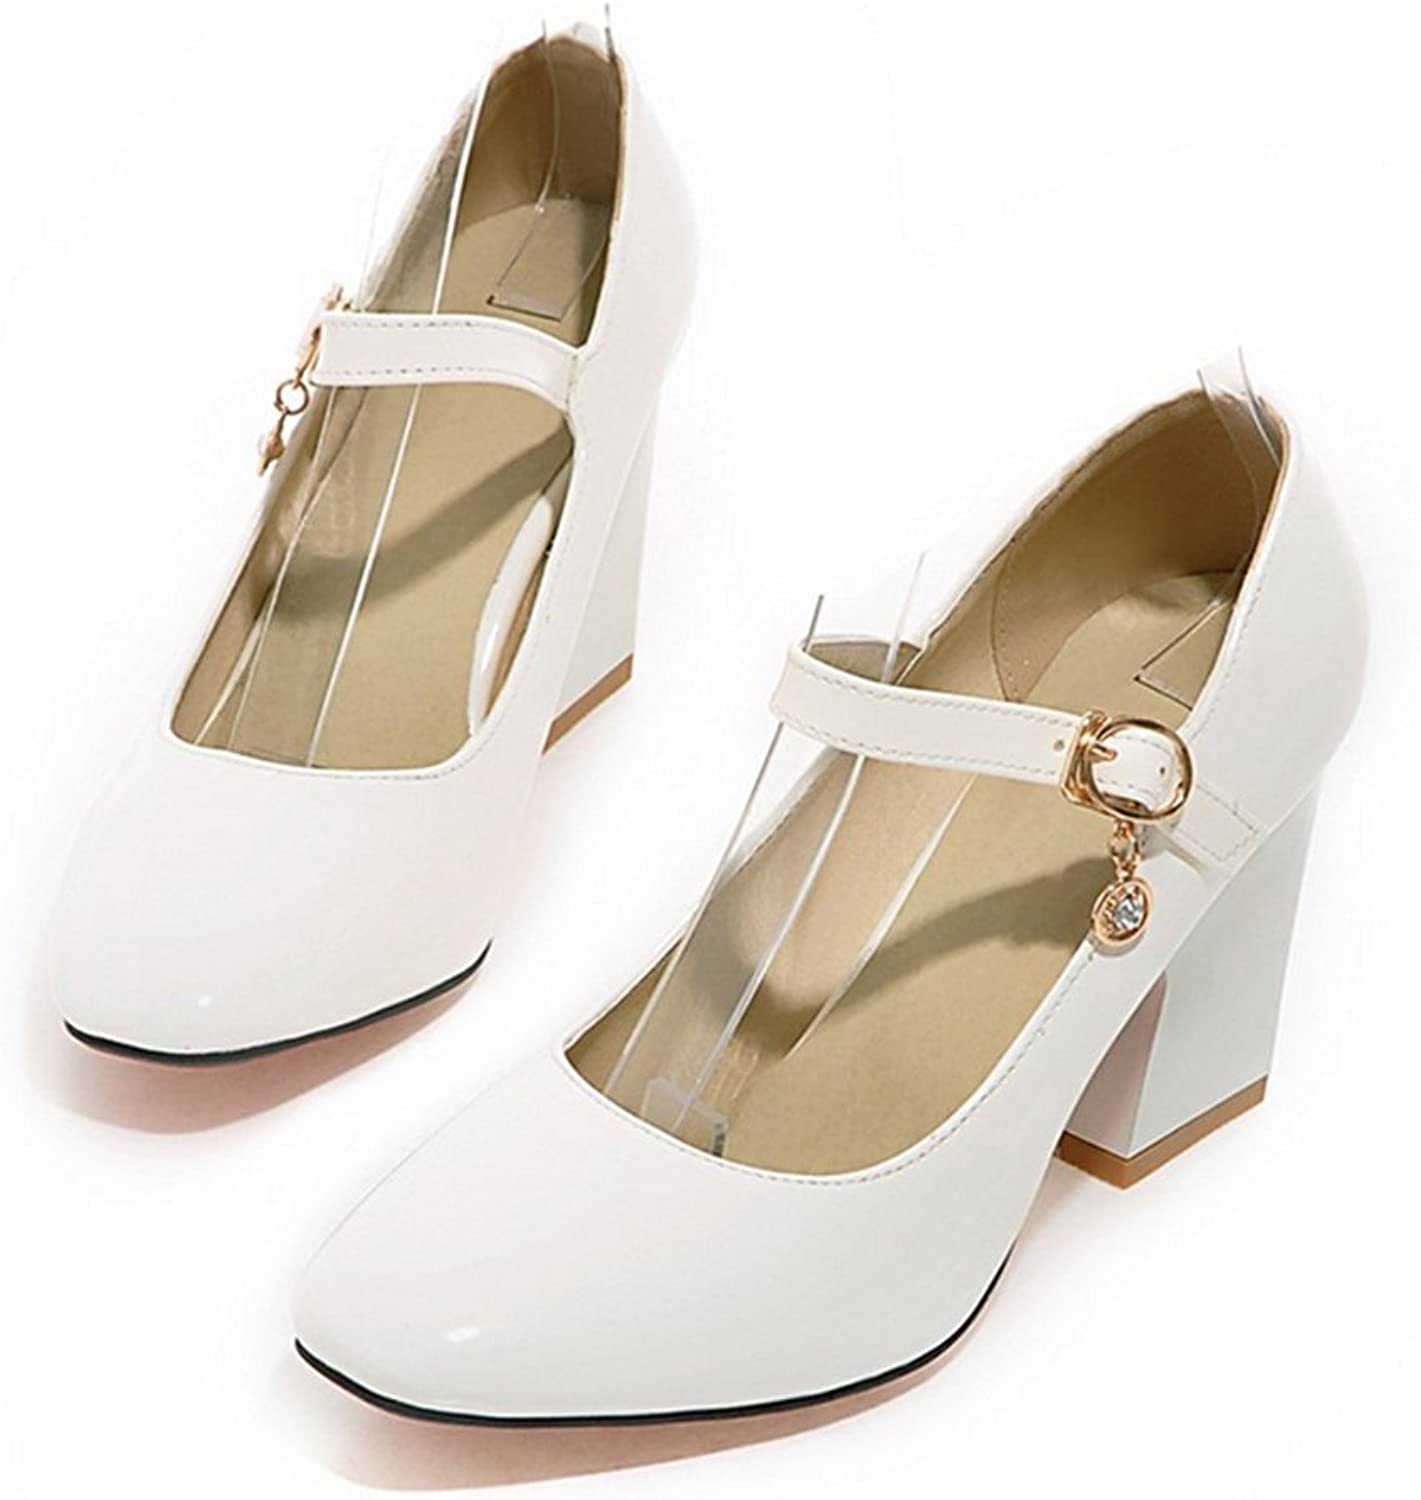 Small Square Last Heel Low-cut Buckle W ork shoes Plus Size white 39